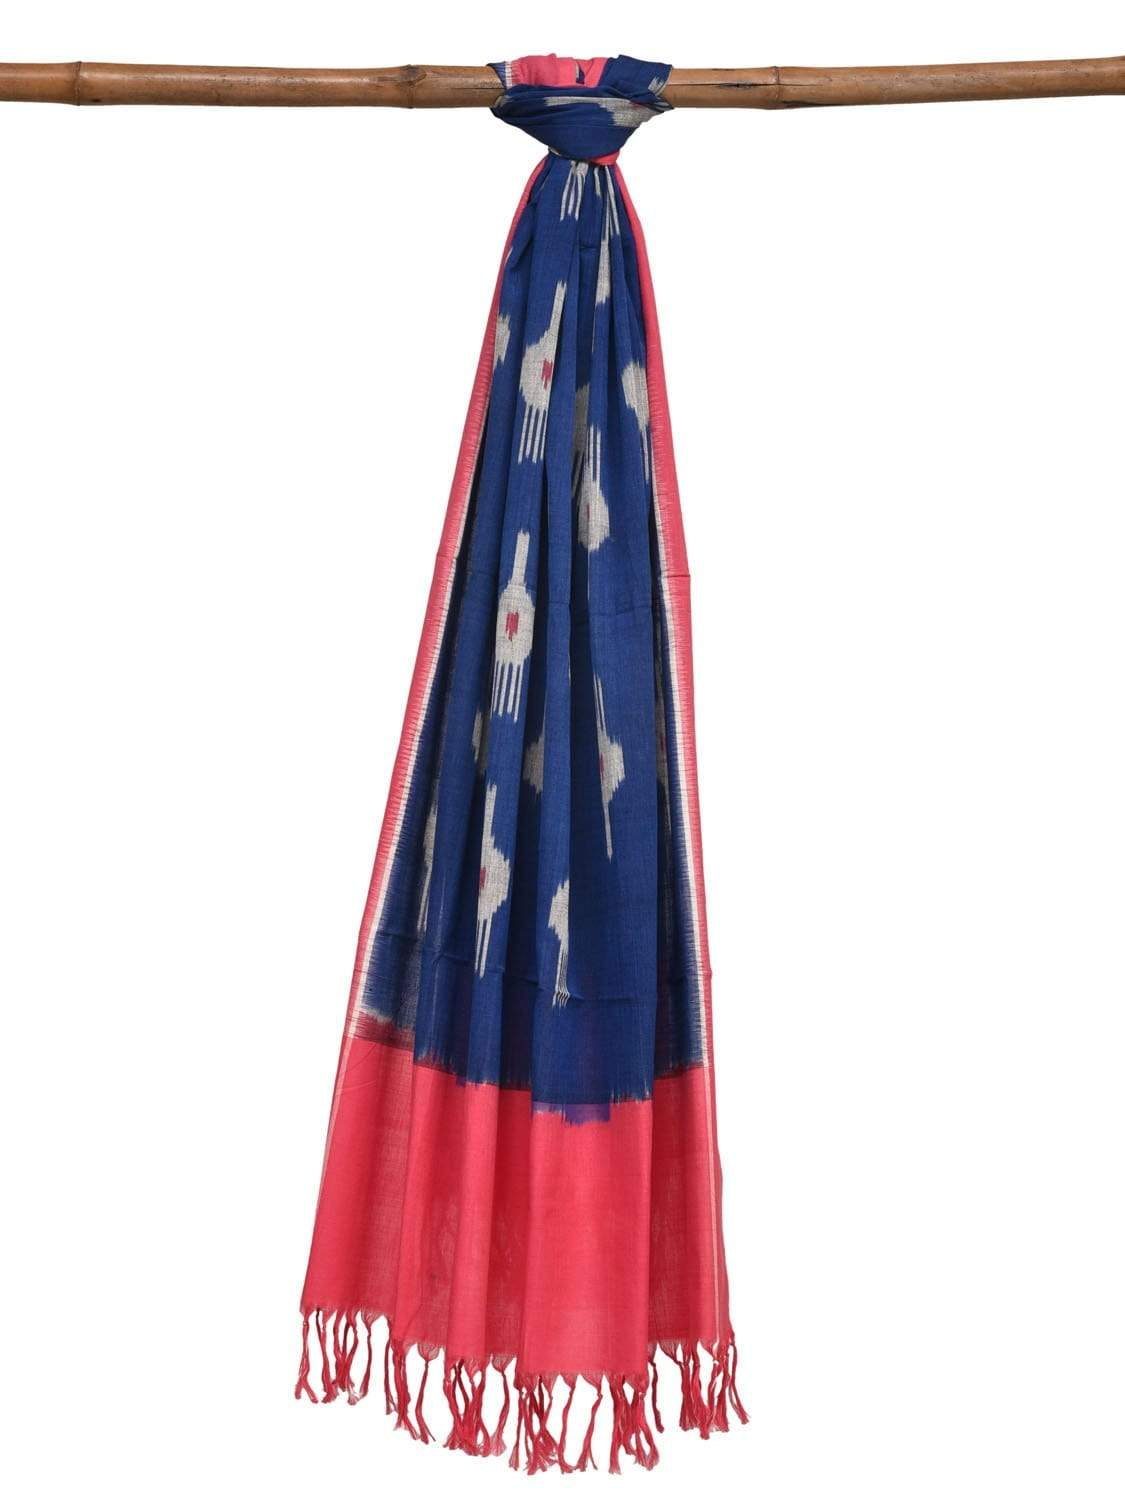 Blue and Baby Pink Pochampally Ikat Cotton Handloom Dupatta with Buta Design ds1889